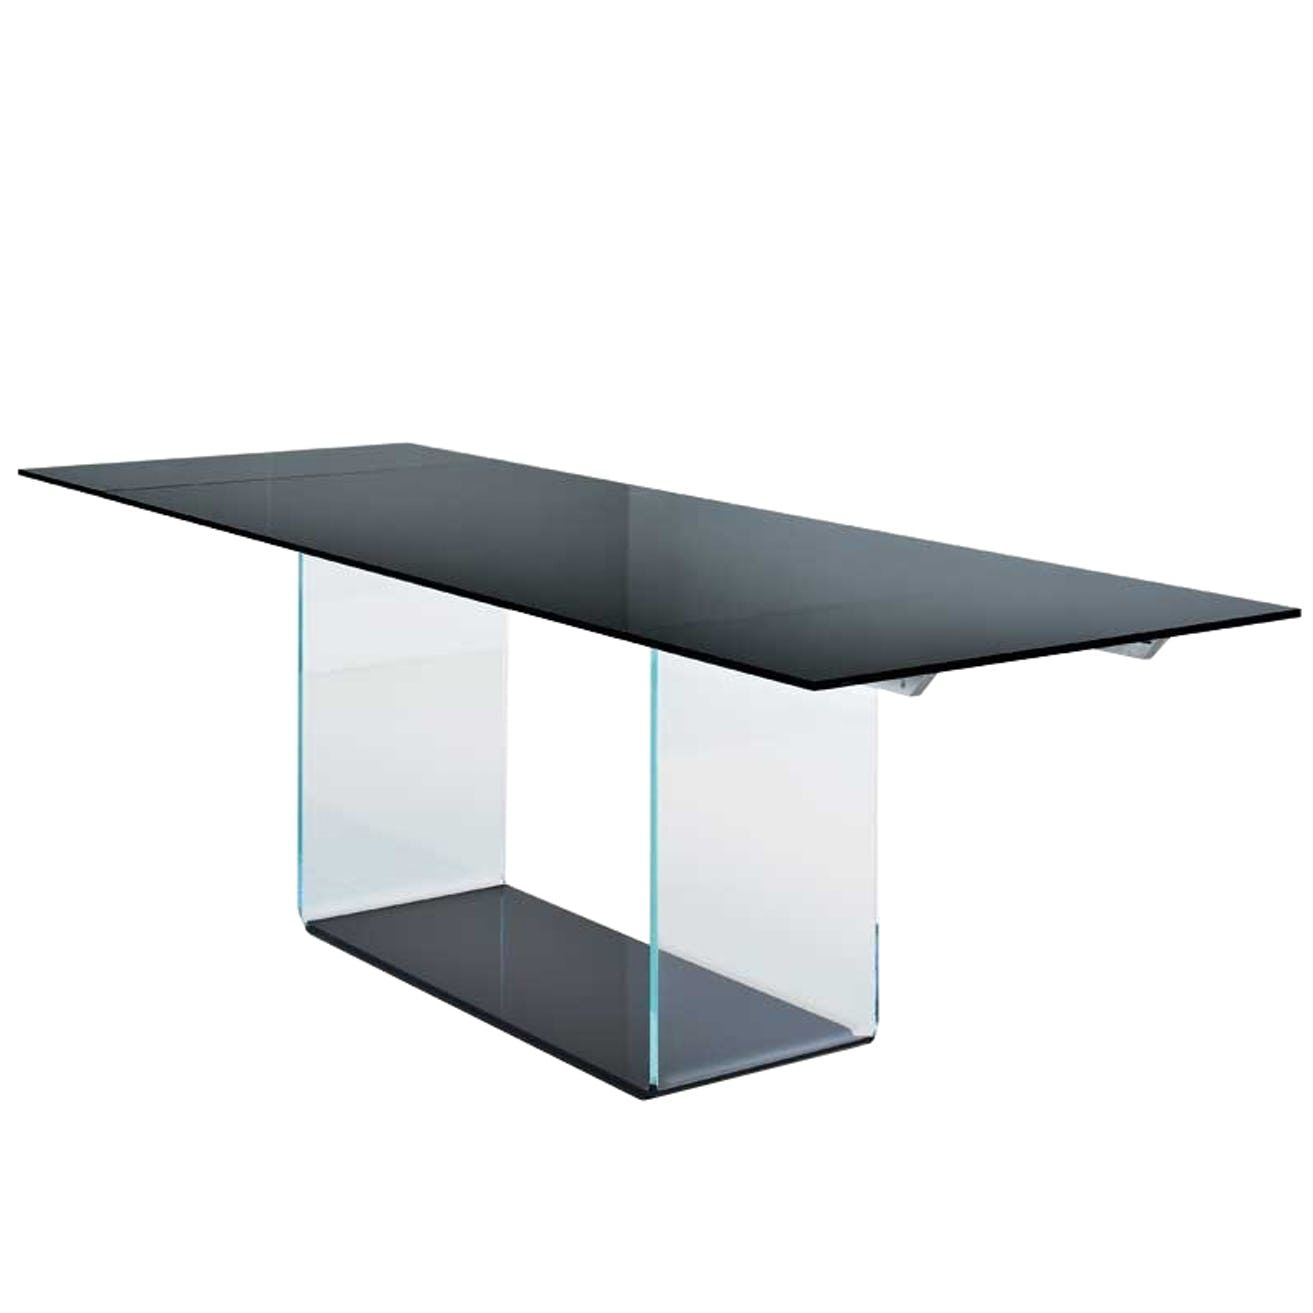 Valencia Dining Table By Sovet Now Available At Haute Living